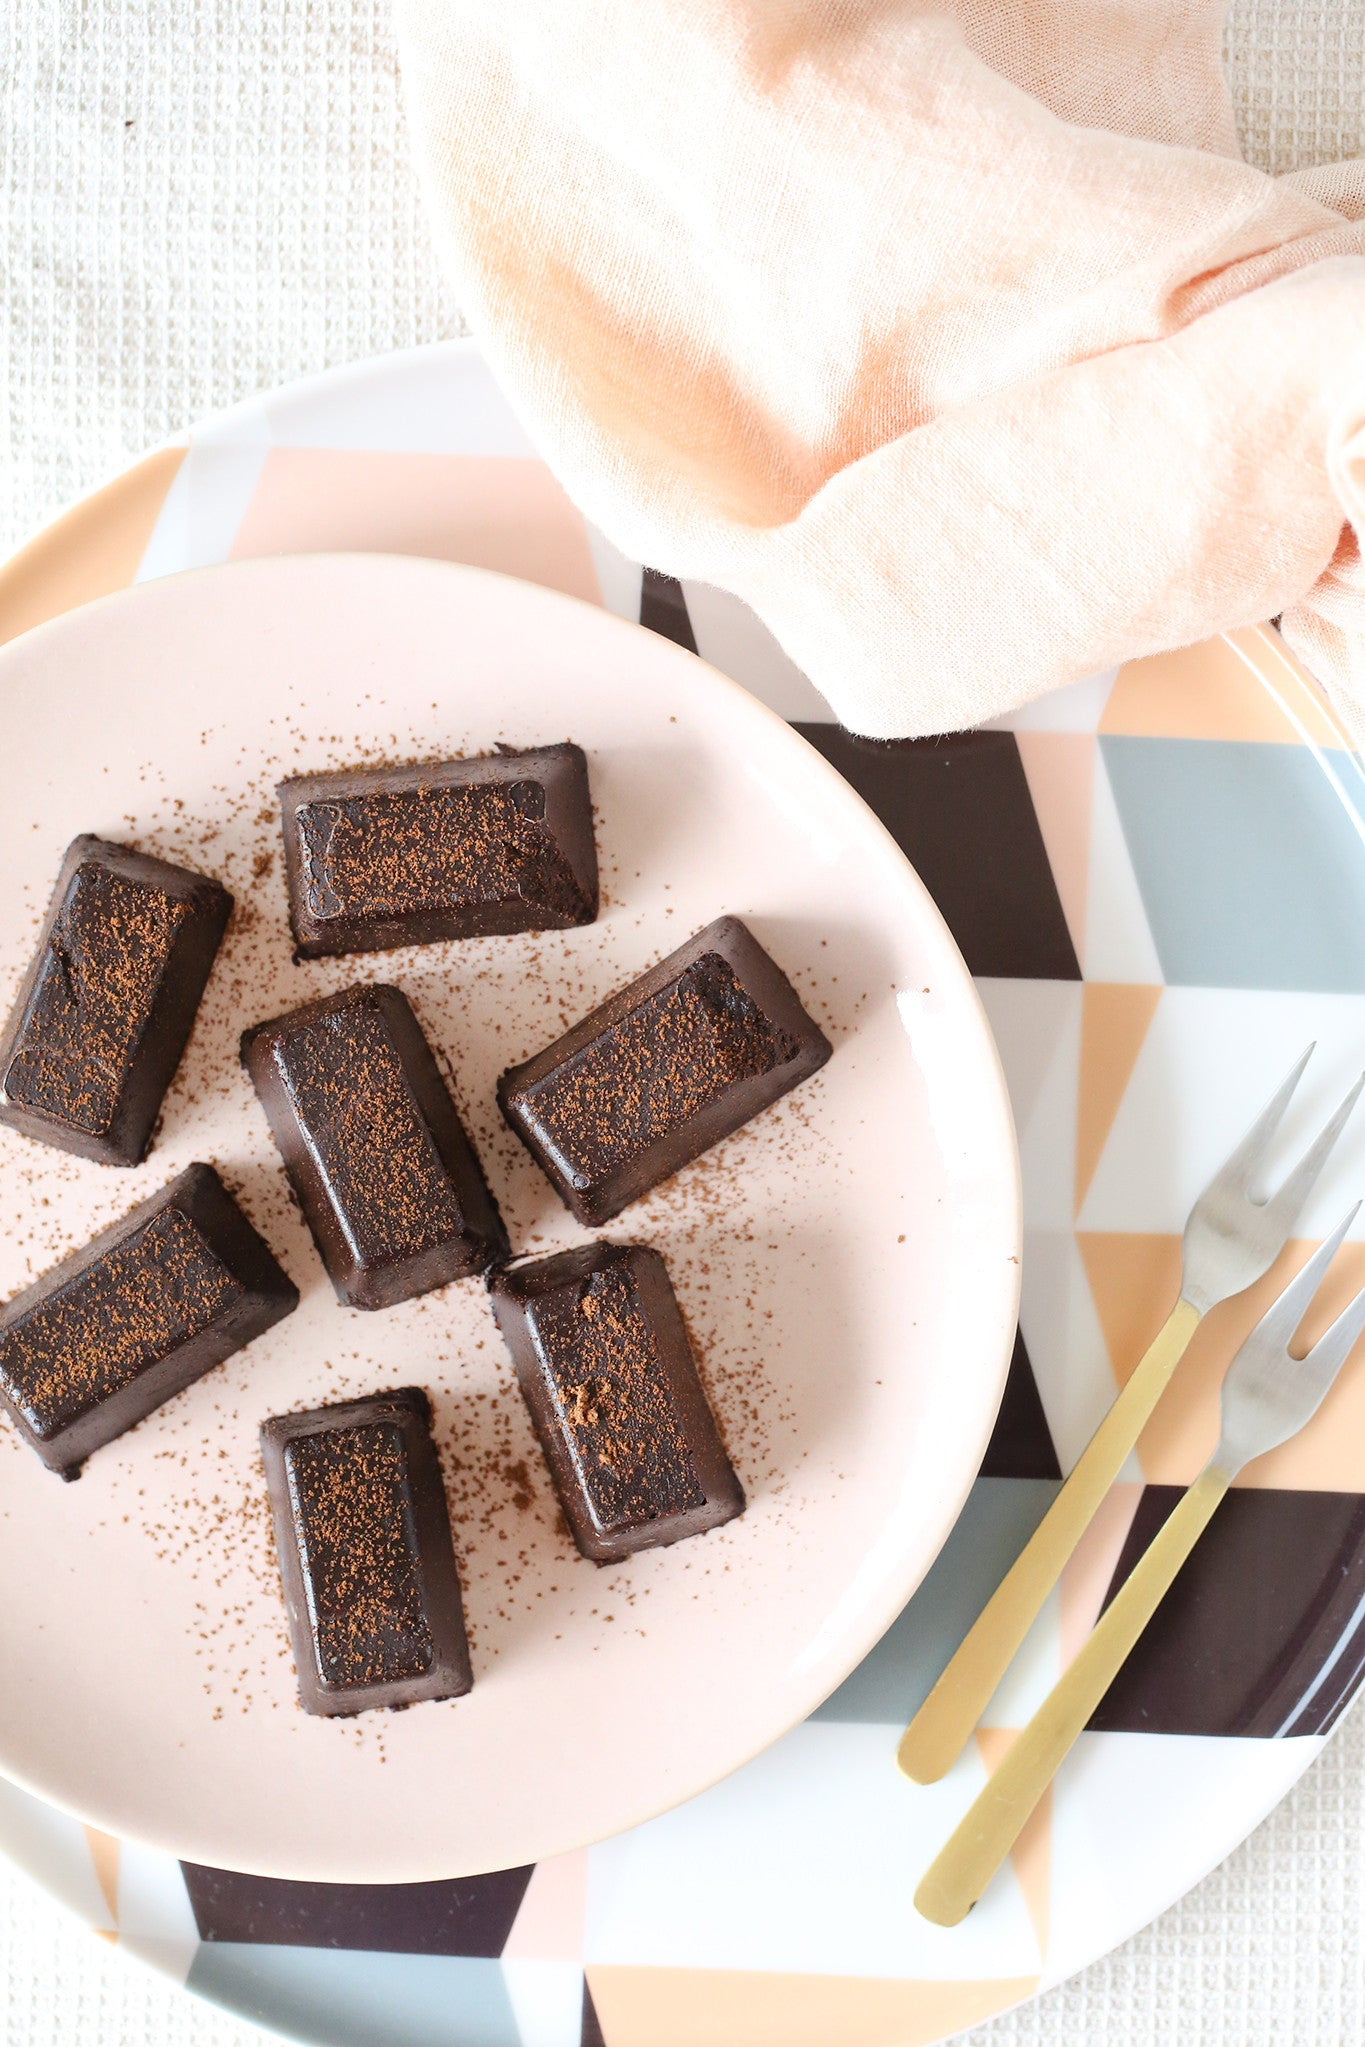 These chocolatey little nuggets will blow you away with how good they taste, despite only taking 5 minutes to make. Dairy, refined sugar and caffeine free!